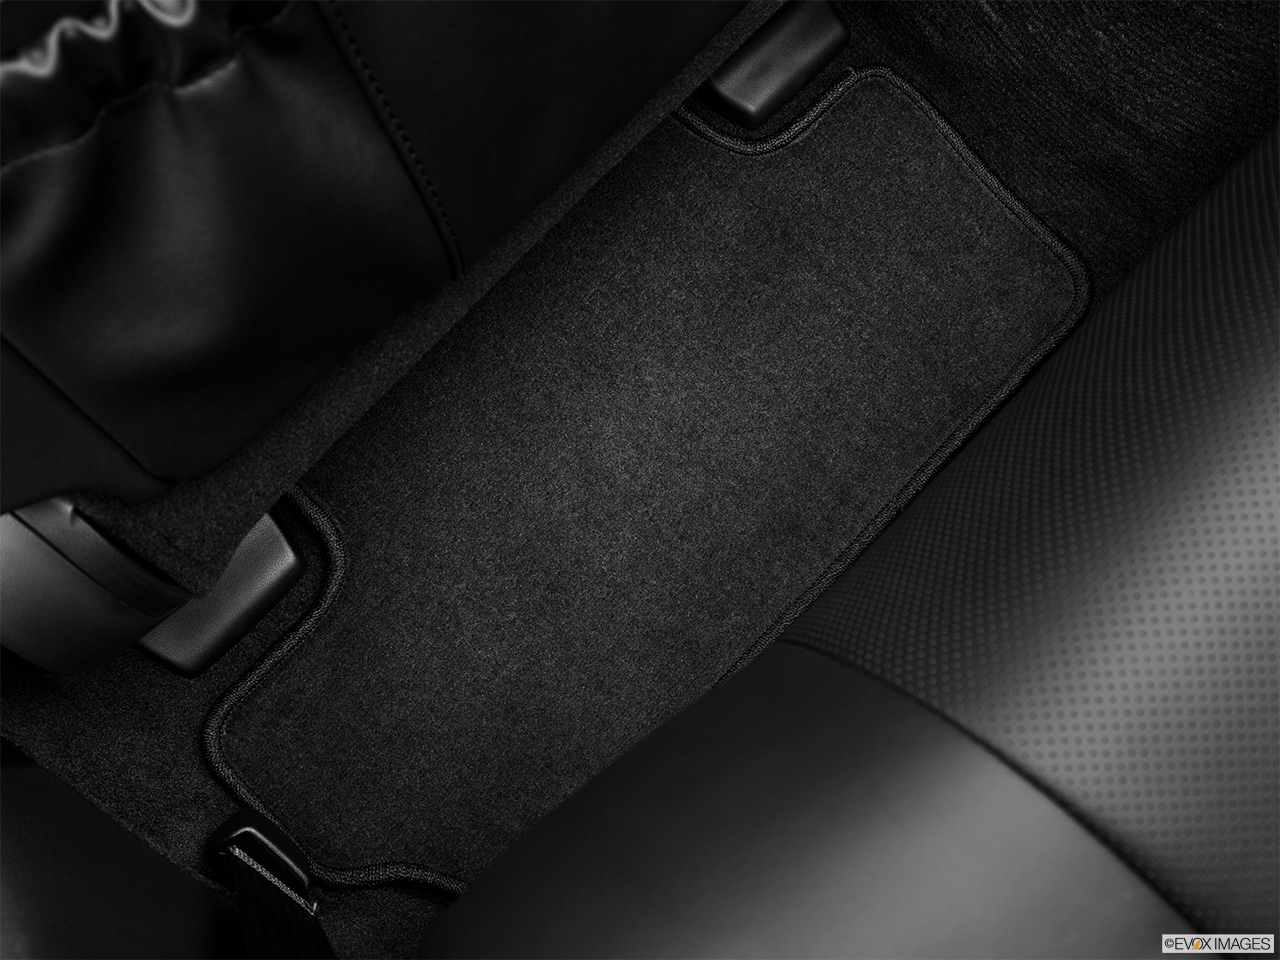 2013 Lexus IS 250C IS 250 C RWD Rear driver's side floor mat. Mid-seat level from outside looking in.